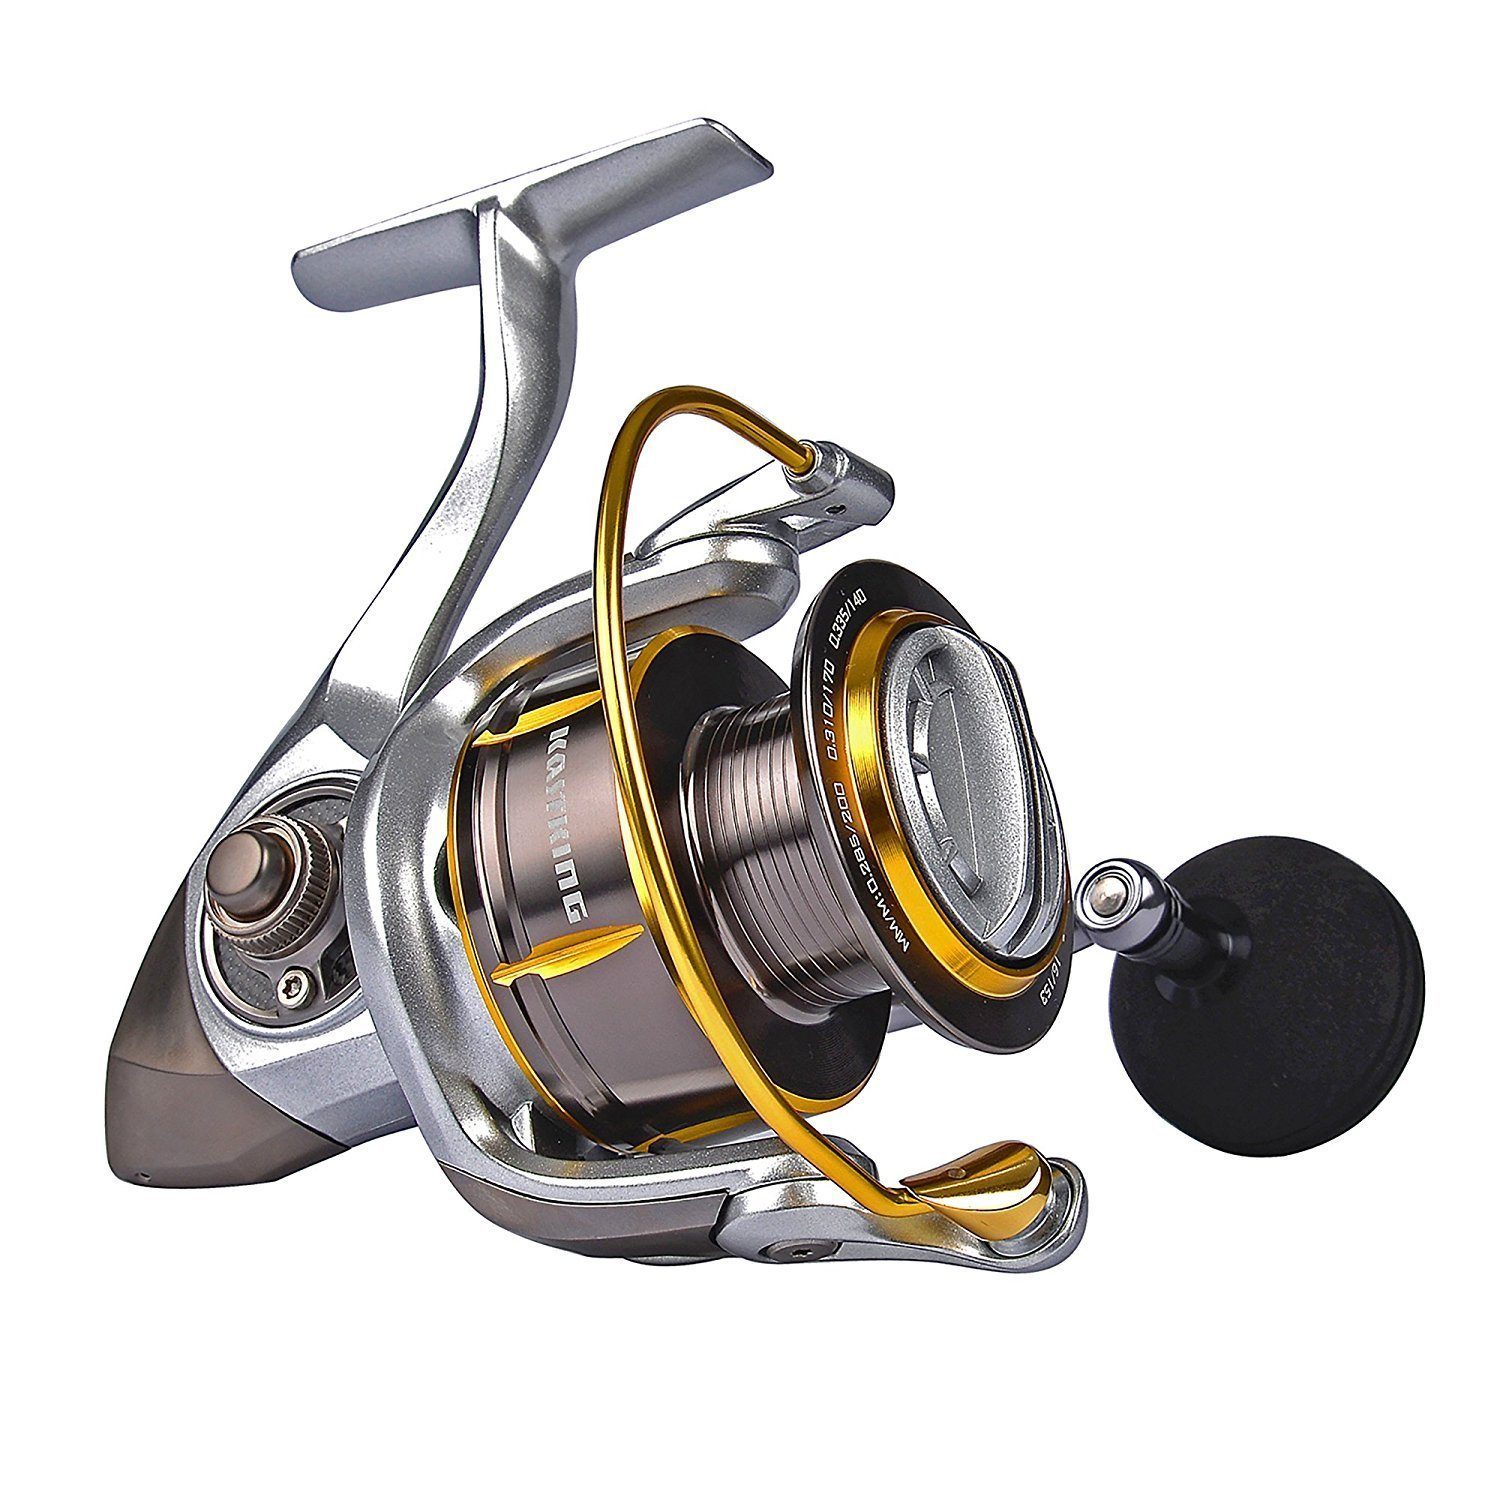 Updated 10 best spinning reels under 100 for bass 2018 for Best spinning reel for bass fishing